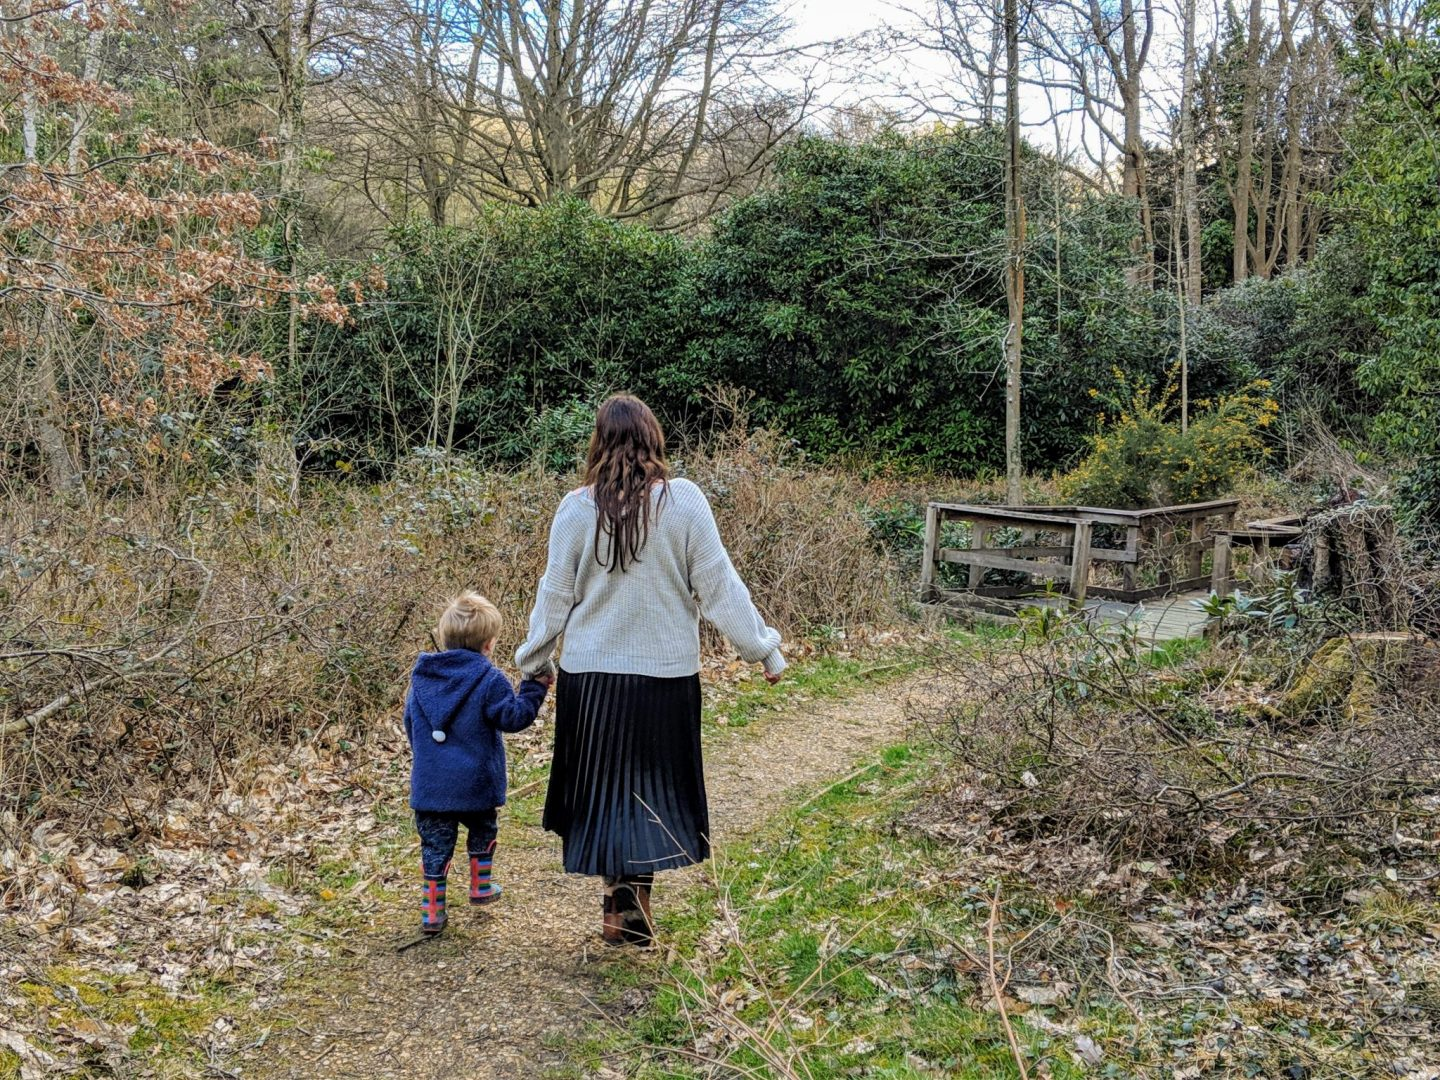 Top 3 Family Travel Ideas In The UK